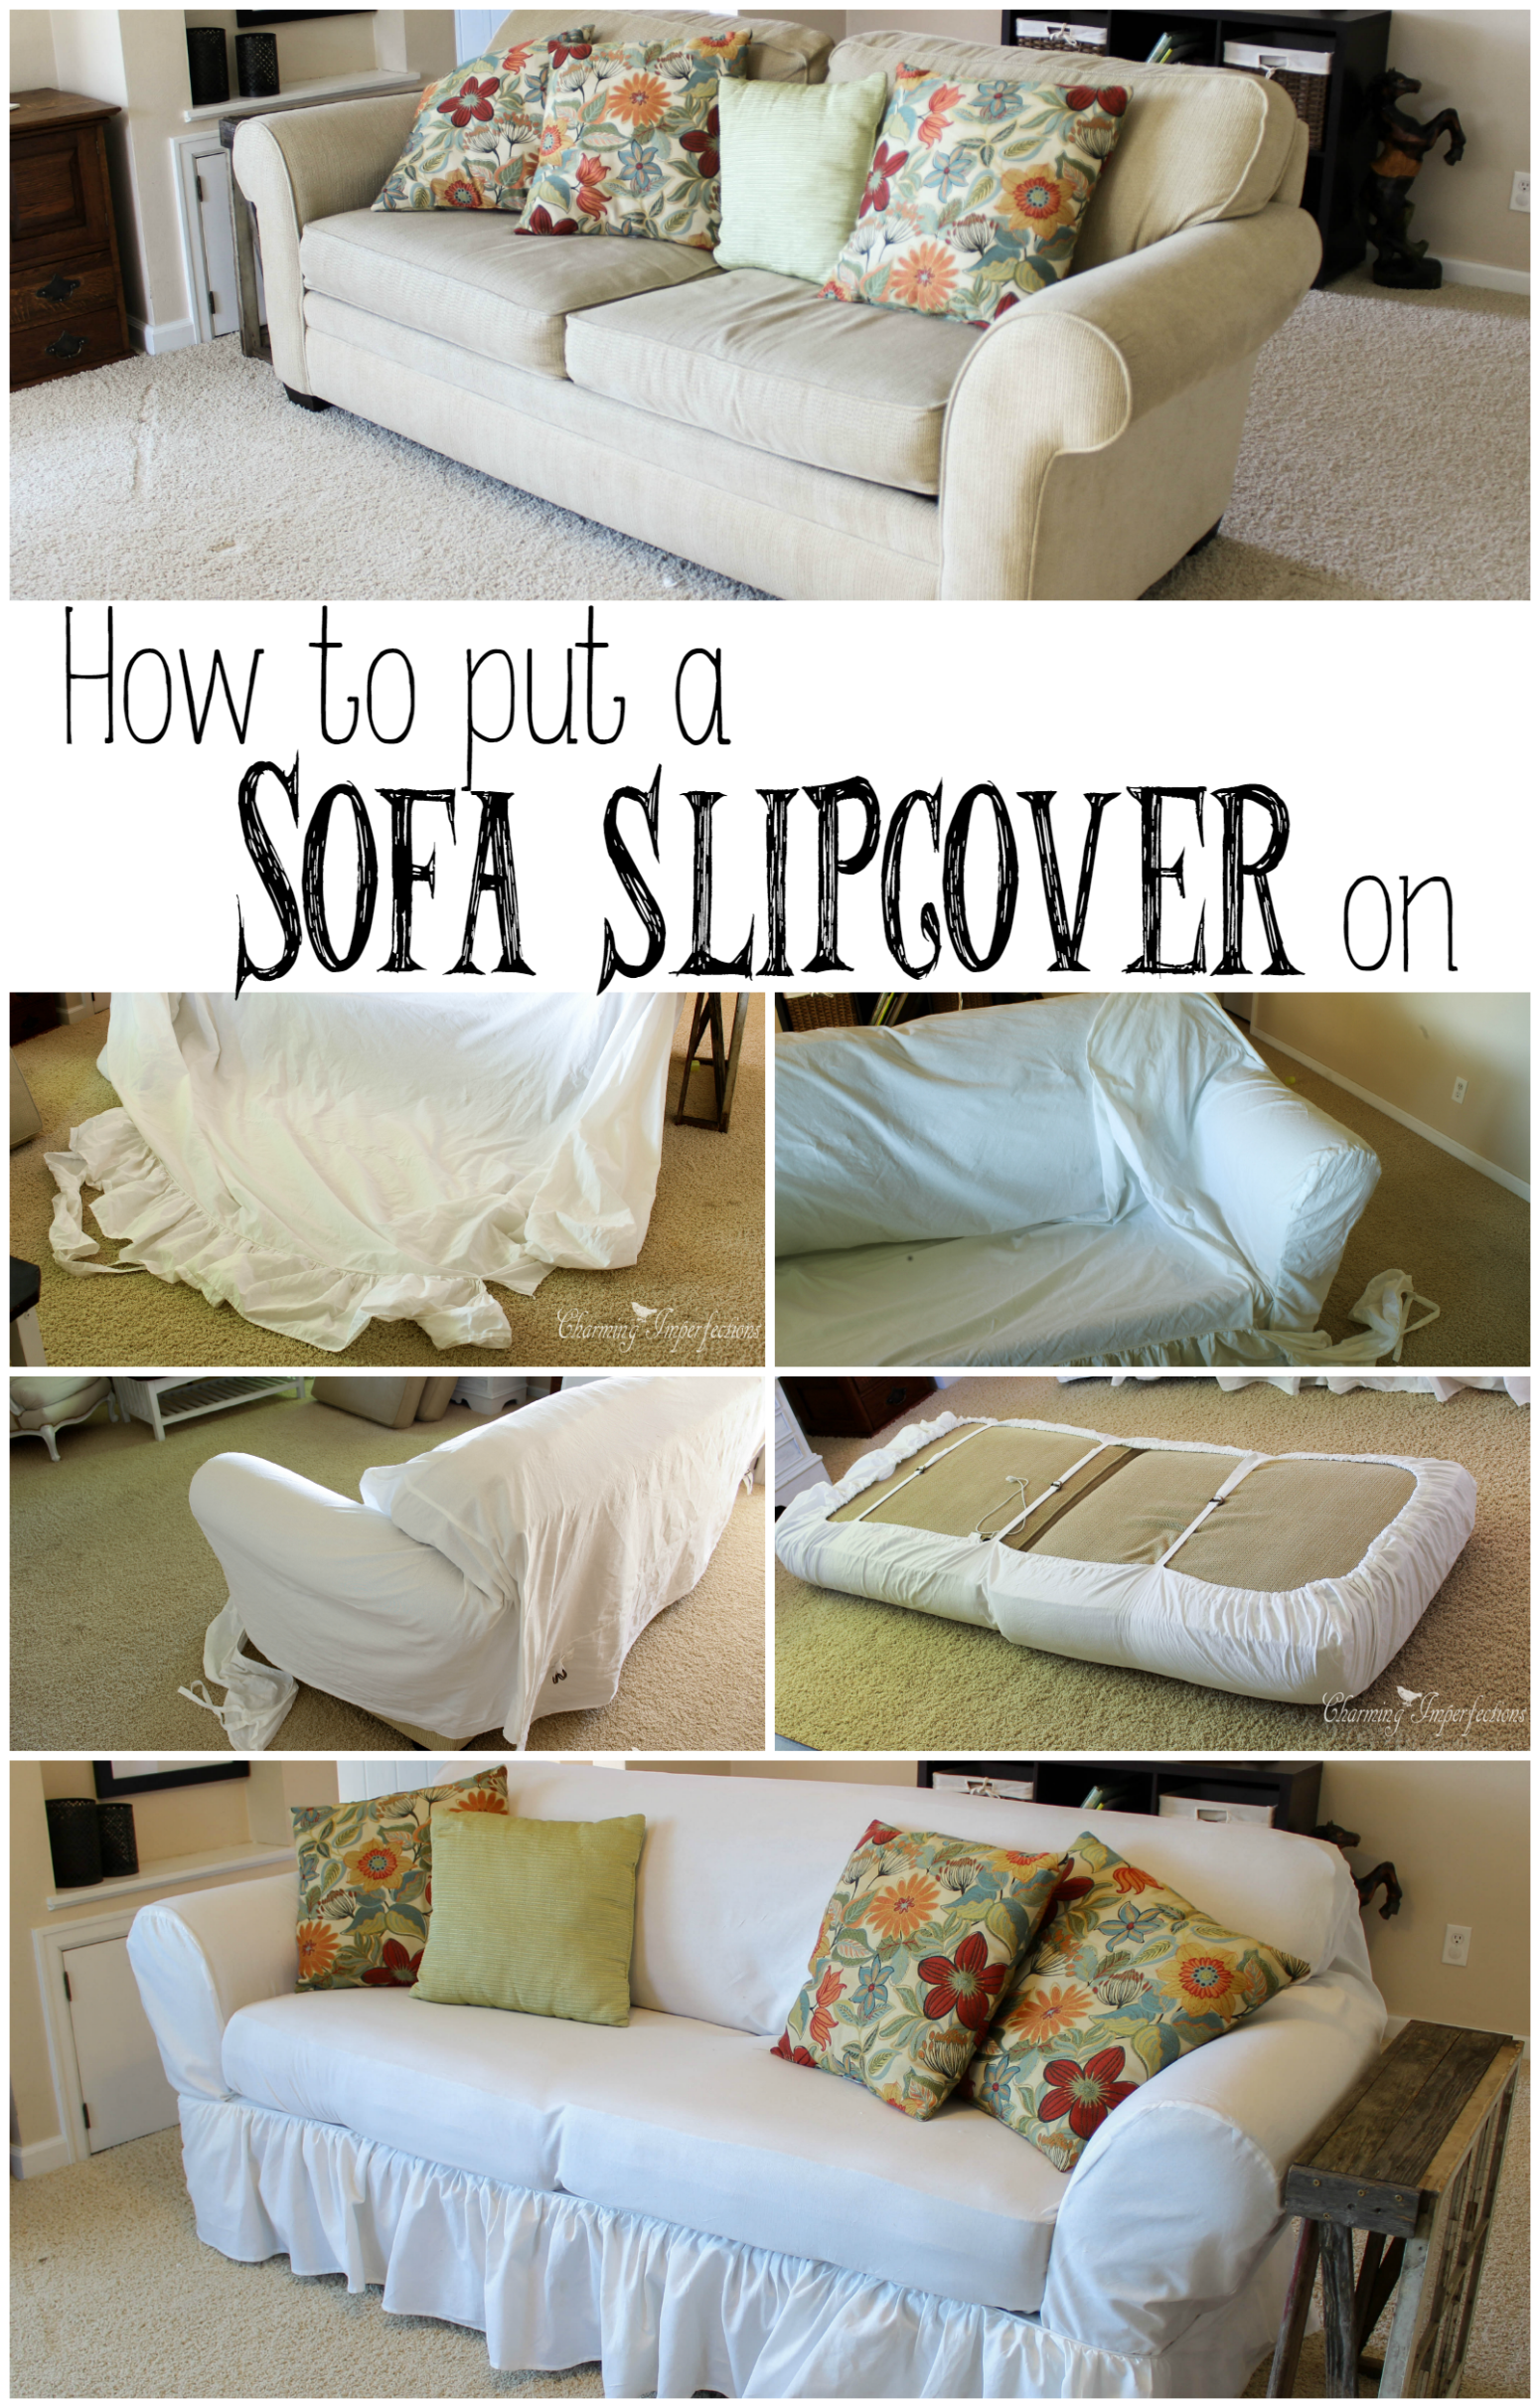 Sofa Slipcover Instructions For Getting That Perfect Fit